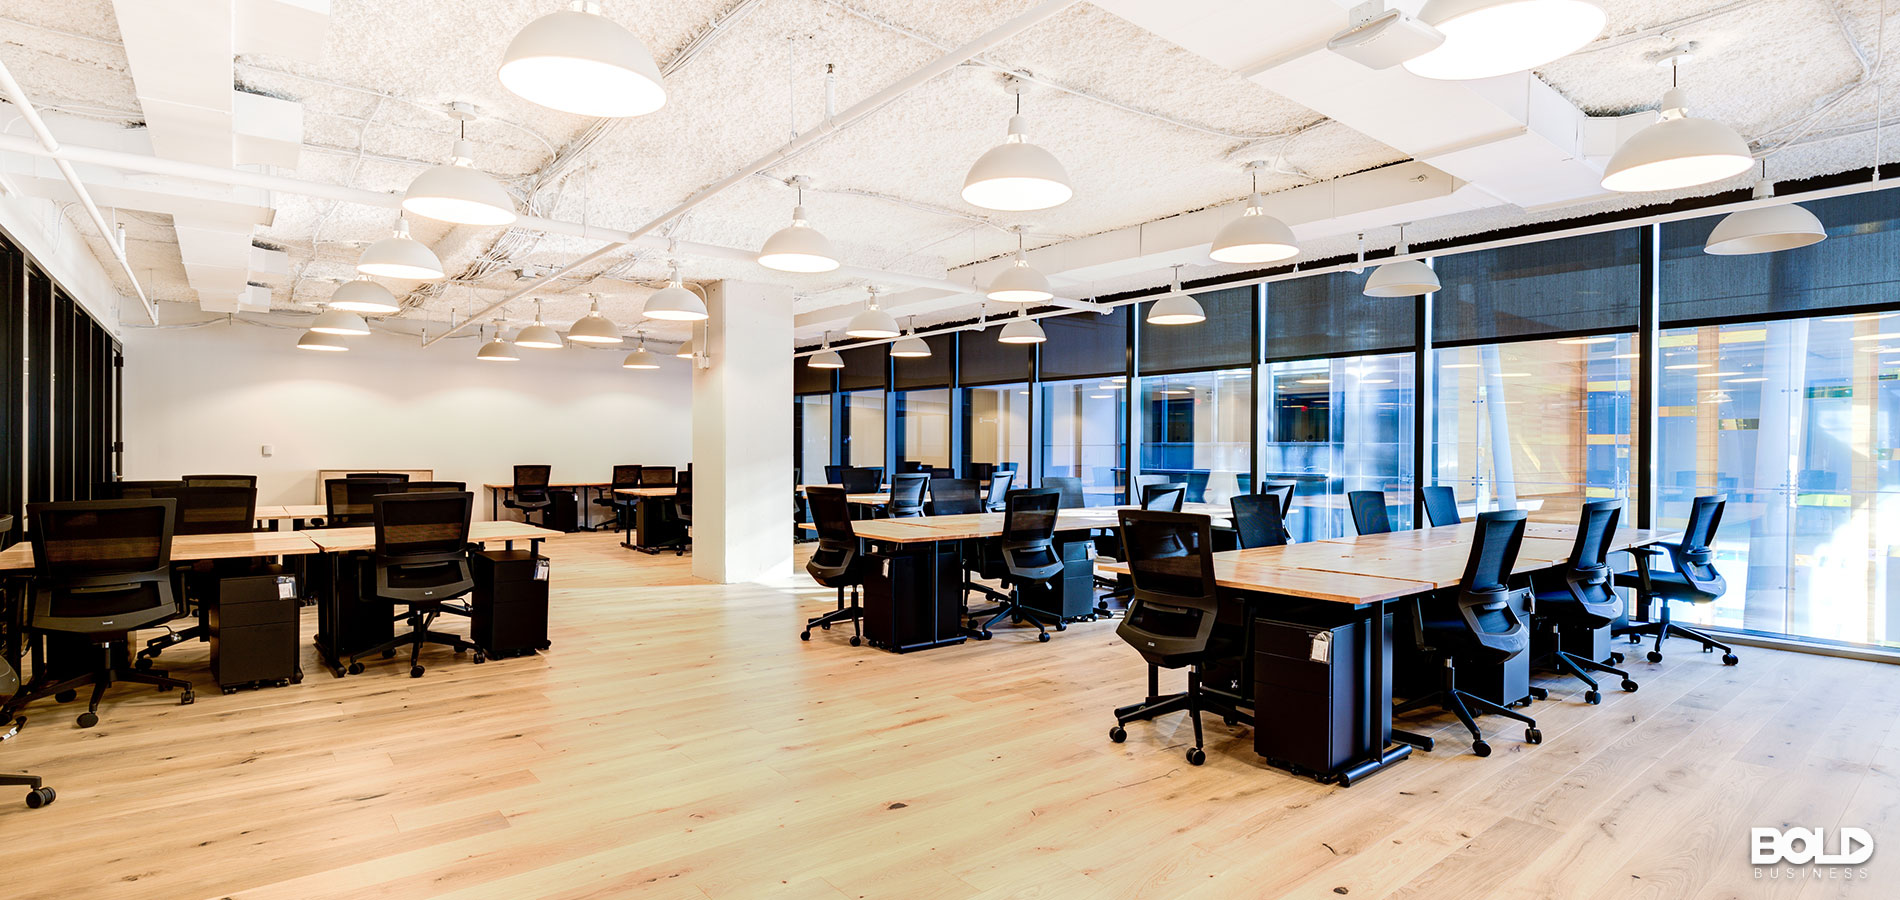 A nice, bright and open shared workspace